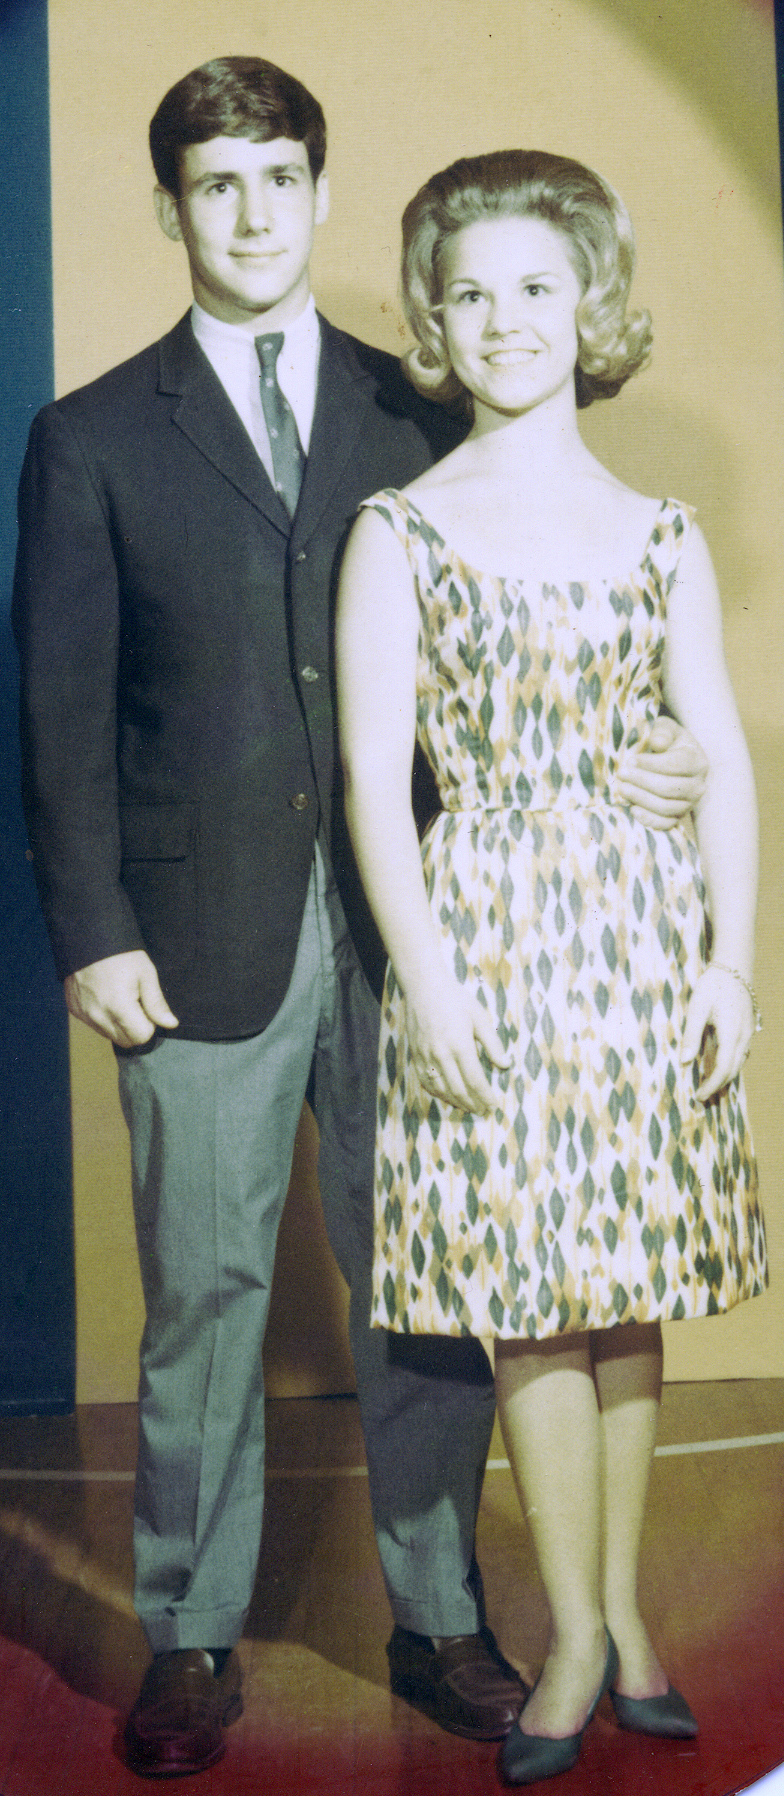 Mark Rogers & Mary Damon Akin on their first date in 1964